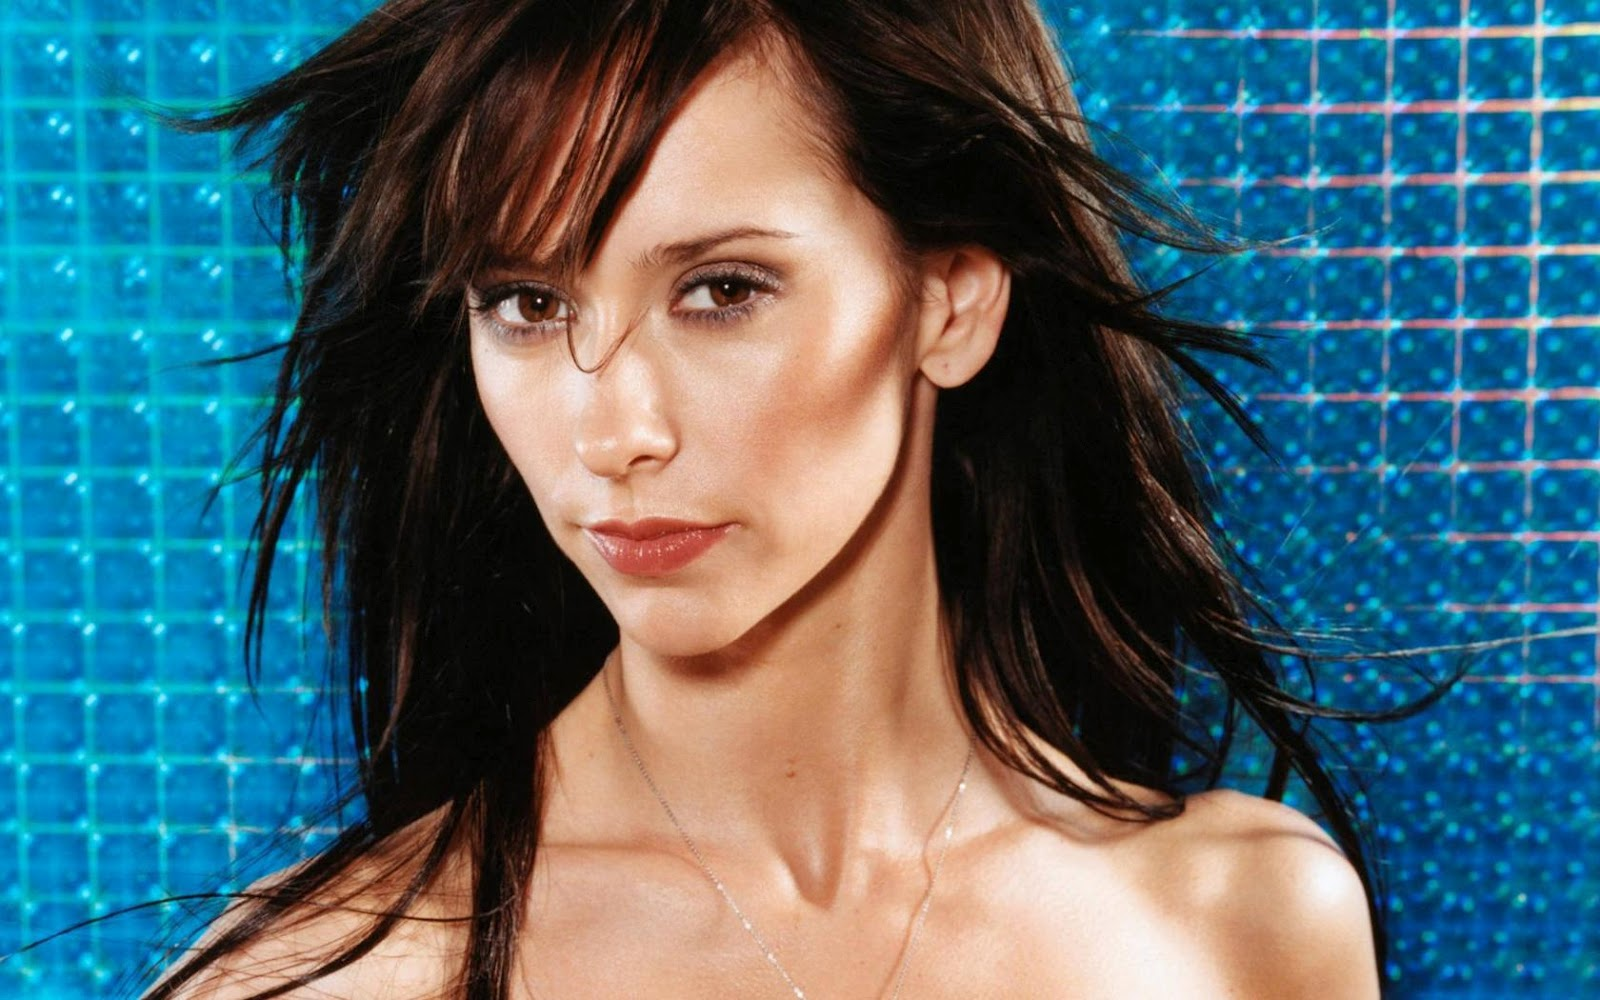 http://4.bp.blogspot.com/-vQ9S3srtp2c/T4-SIgevzZI/AAAAAAAAAqQ/R6MJy55S_Mg/s1600/jennifer_love_hewitt_hair_widescreen_wallpaper_74604.jpg